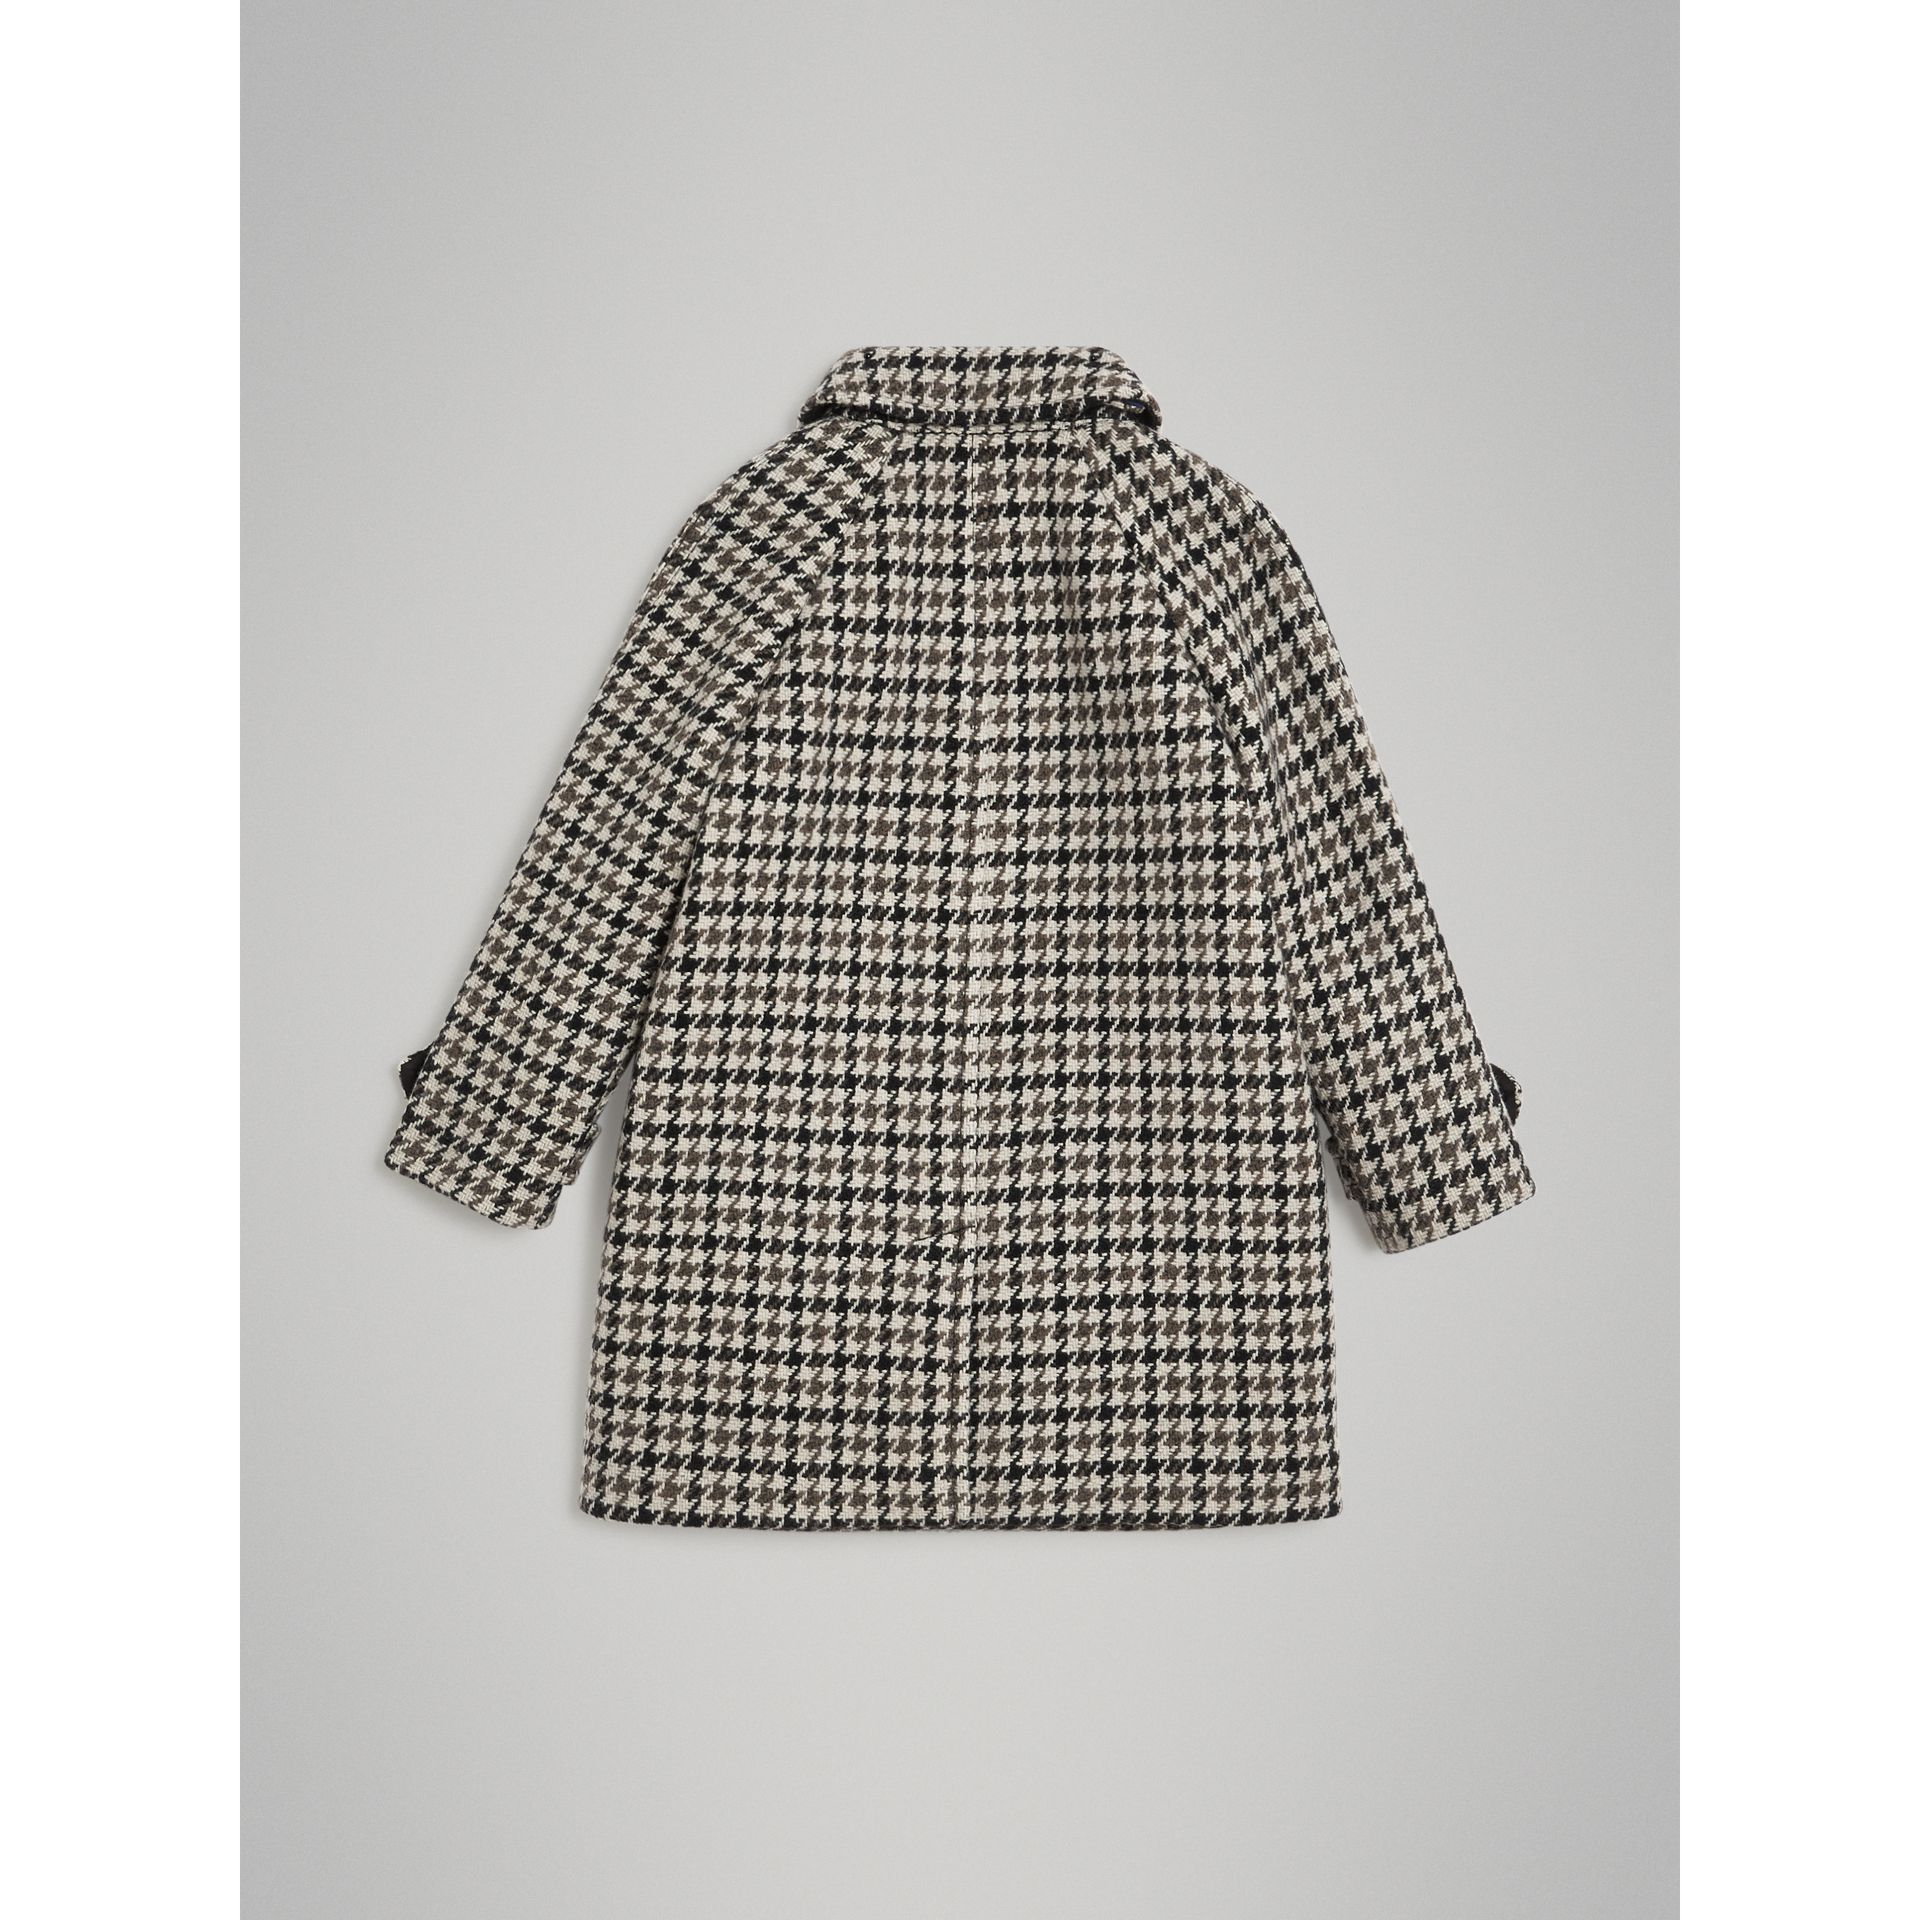 Houndstooth Check Wool Cashmere Blend Coat in Mid Grey | Burberry - gallery image 3